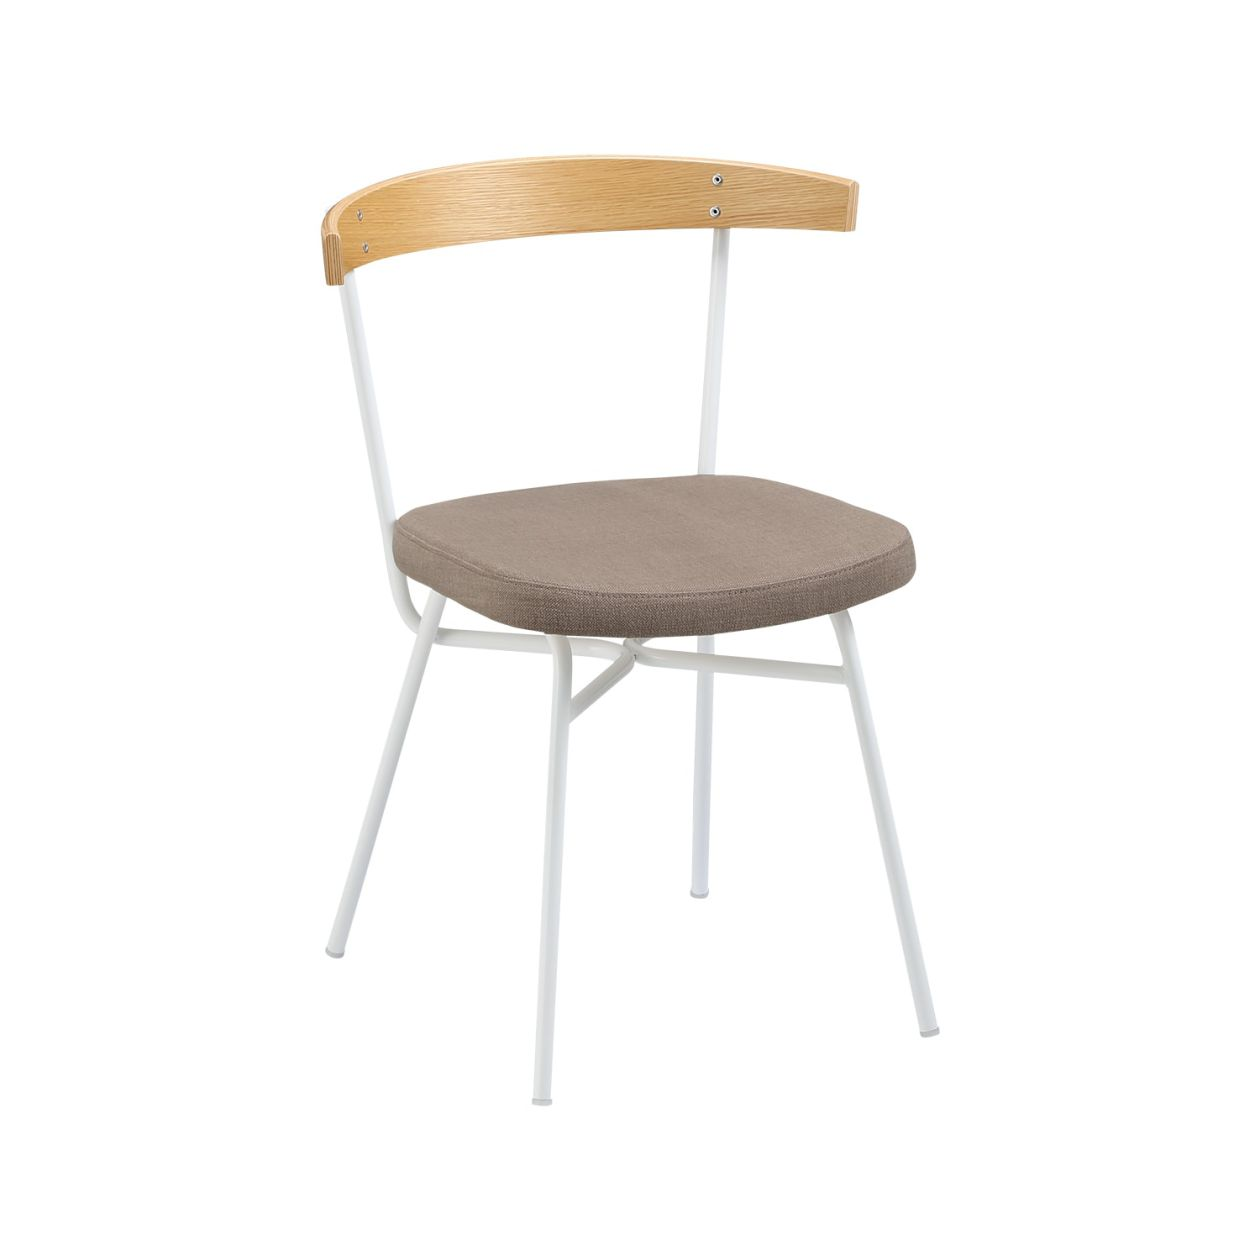 FERRET CHAIR / WH FRAME CA4201